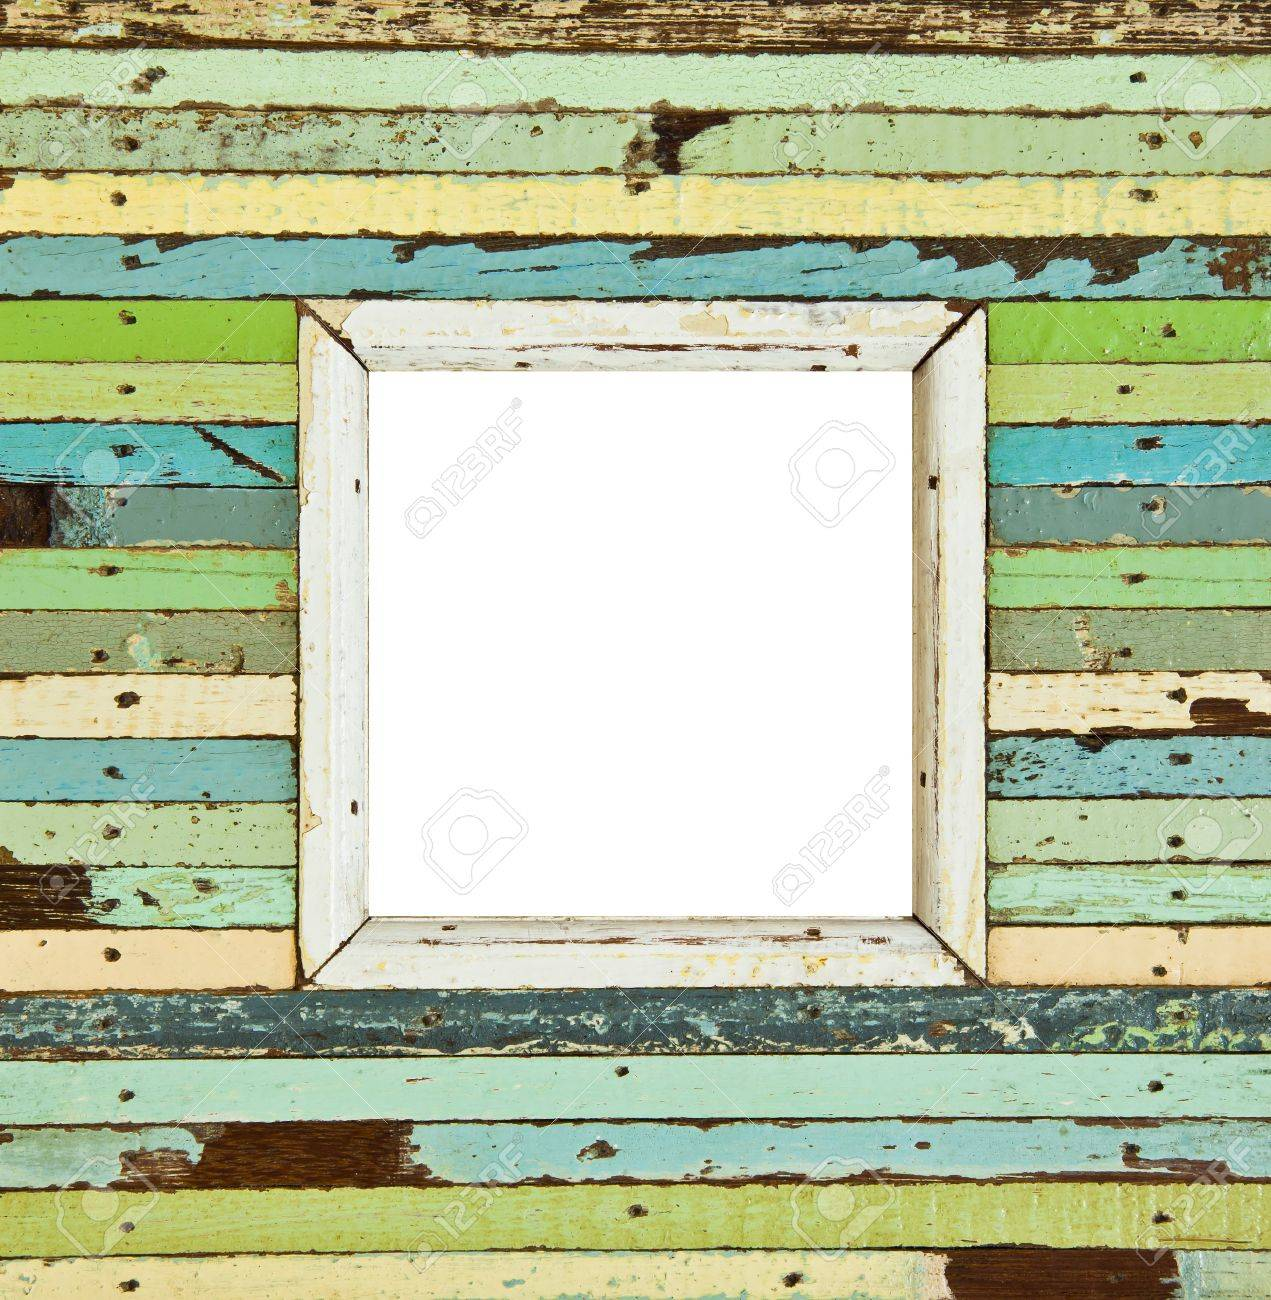 The isolated image of the colorful wooden picture frame - 15721628